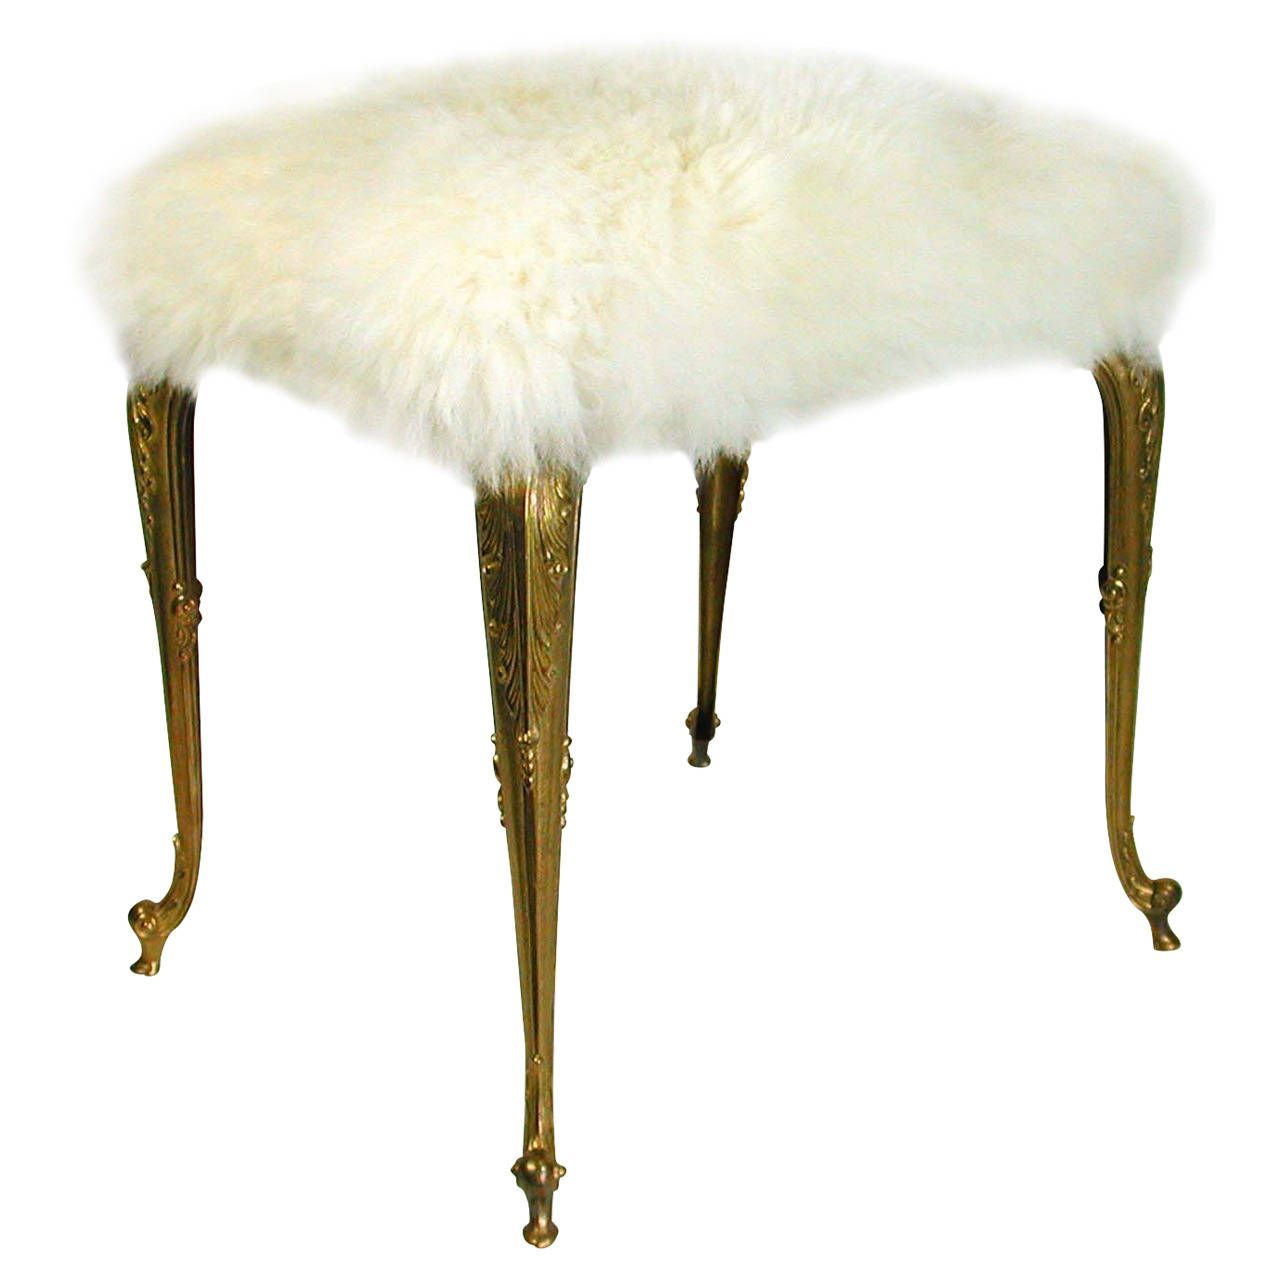 Hollywood Regency Upholstered Fur Sheep Bronze Vanity Stool Chair, 1960s |  From a unique collection - Hollywood Regency Upholstered Fur Sheep Bronze Vanity Stool Chair